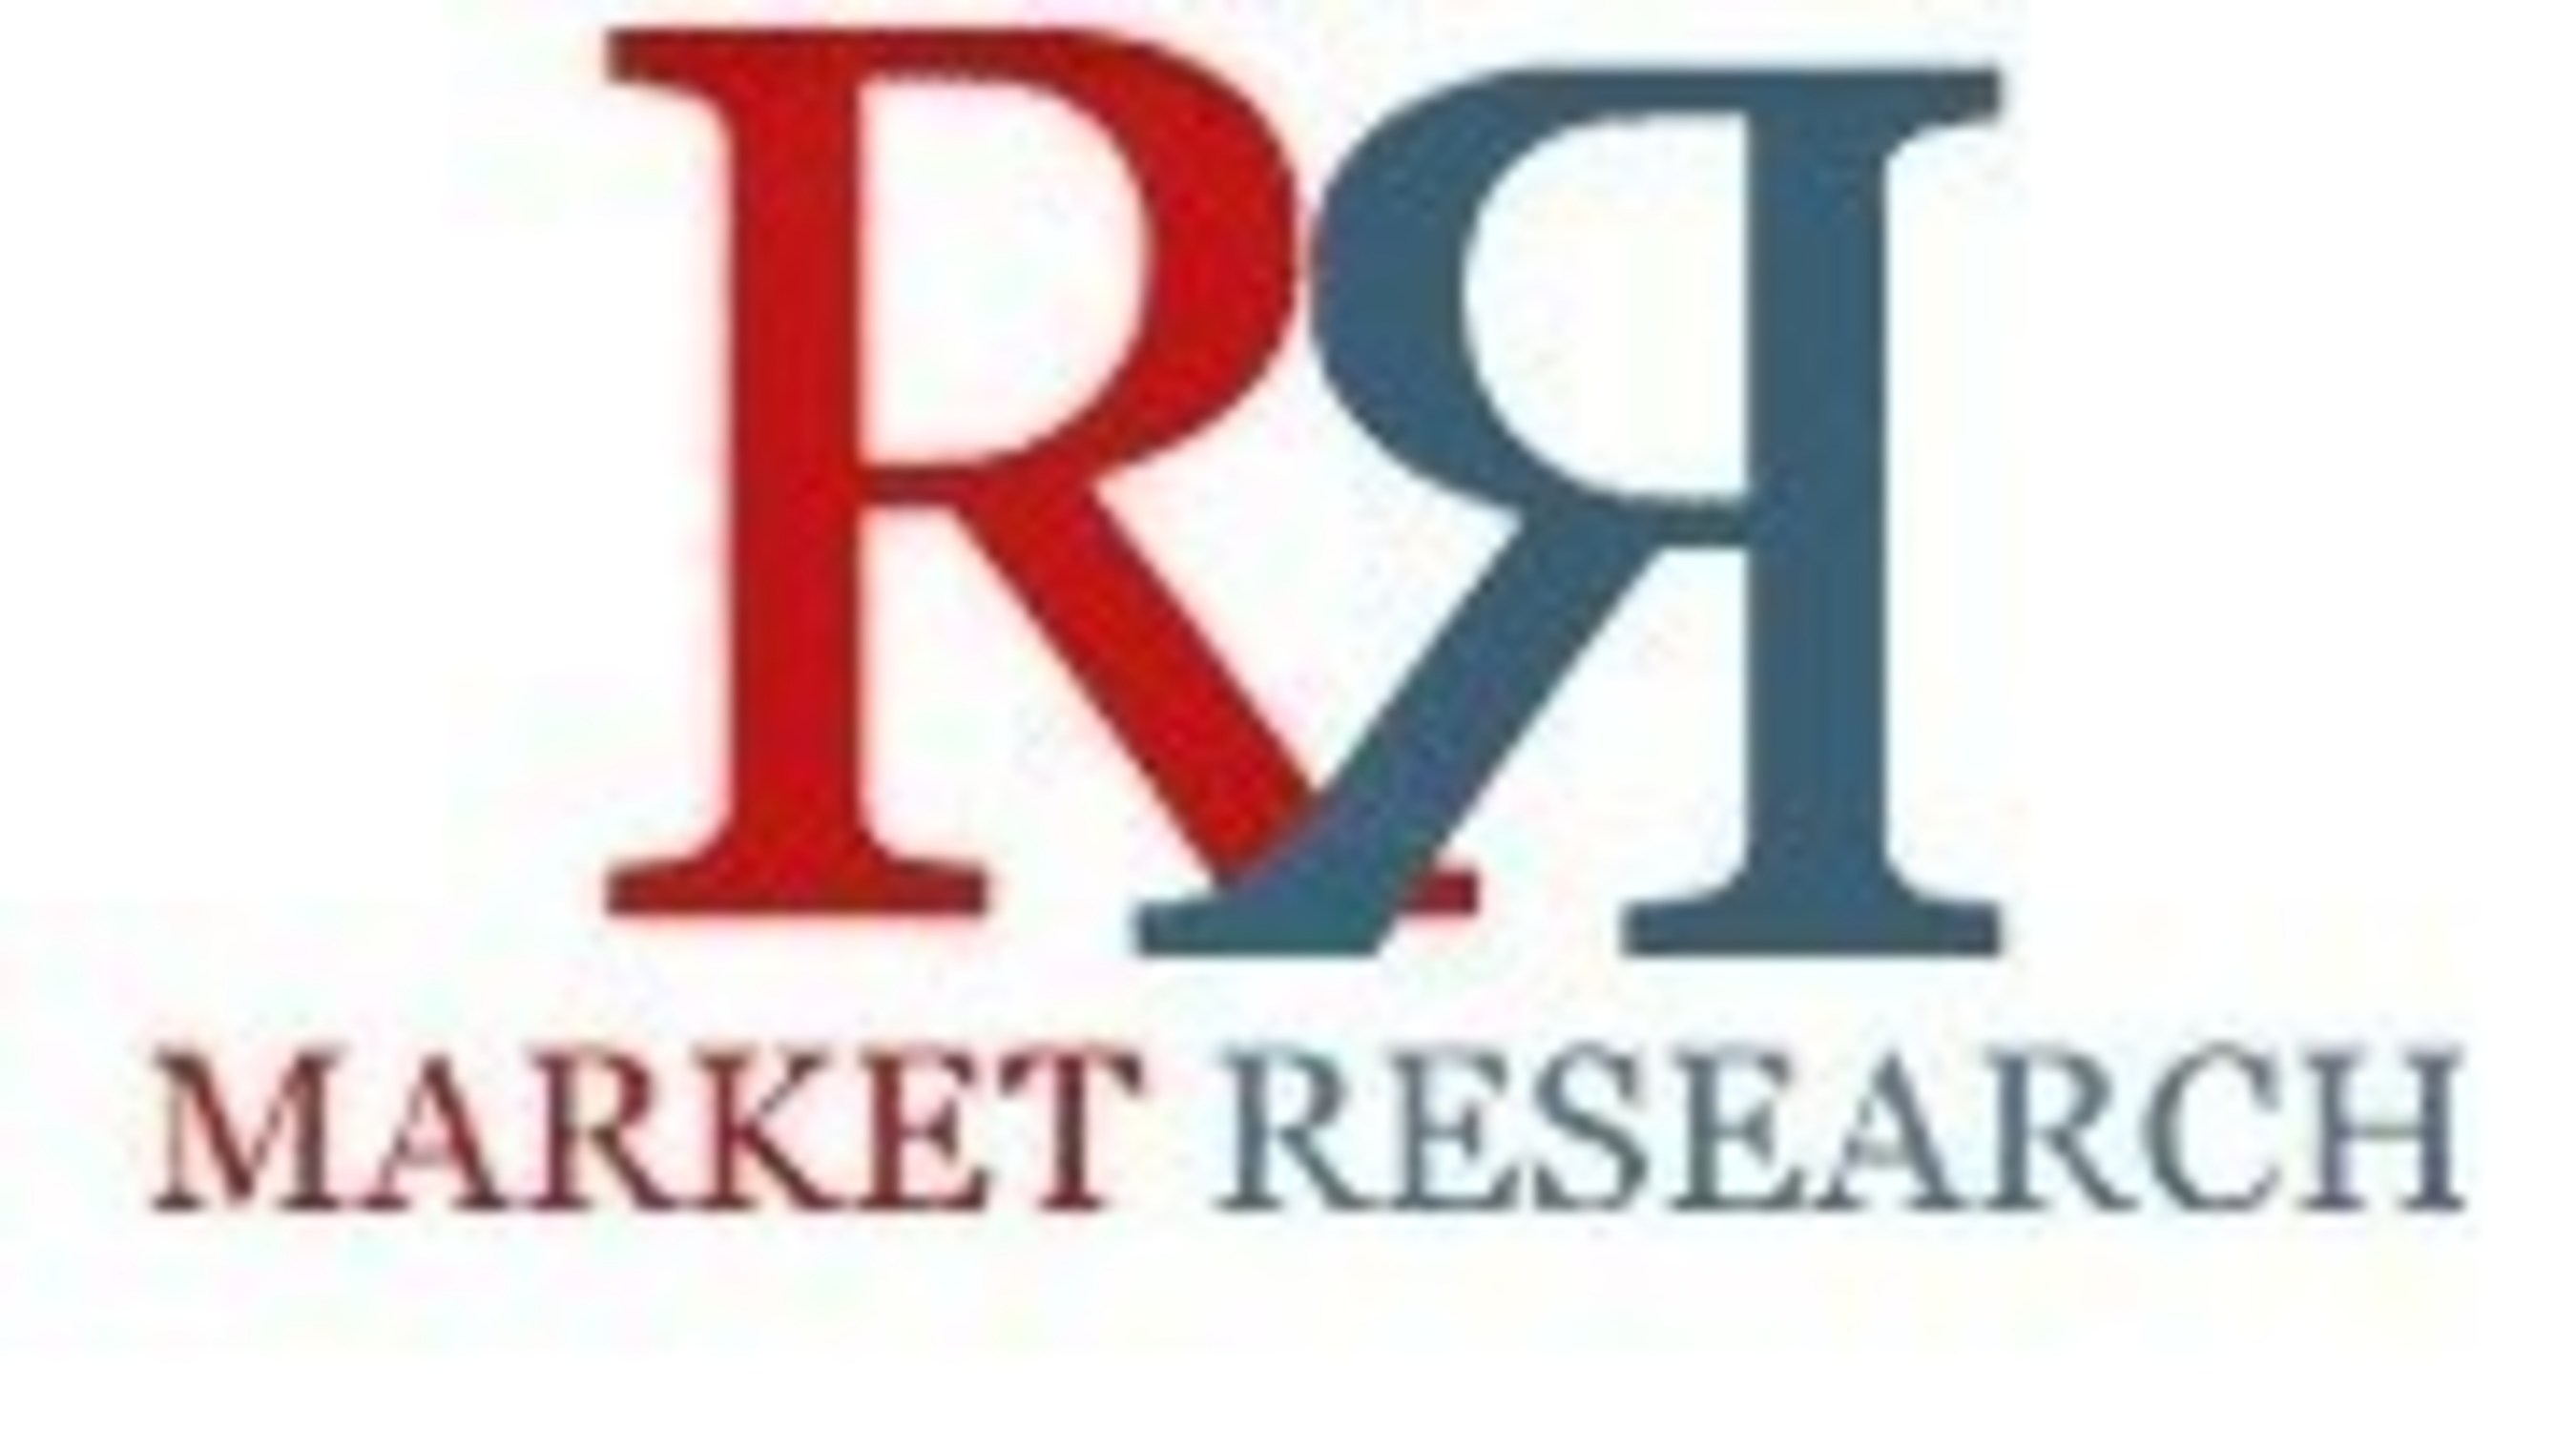 Smart Education Market Growing at 24.4% CAGR to 2020 - New Research Available at RnRMarketResearch.com